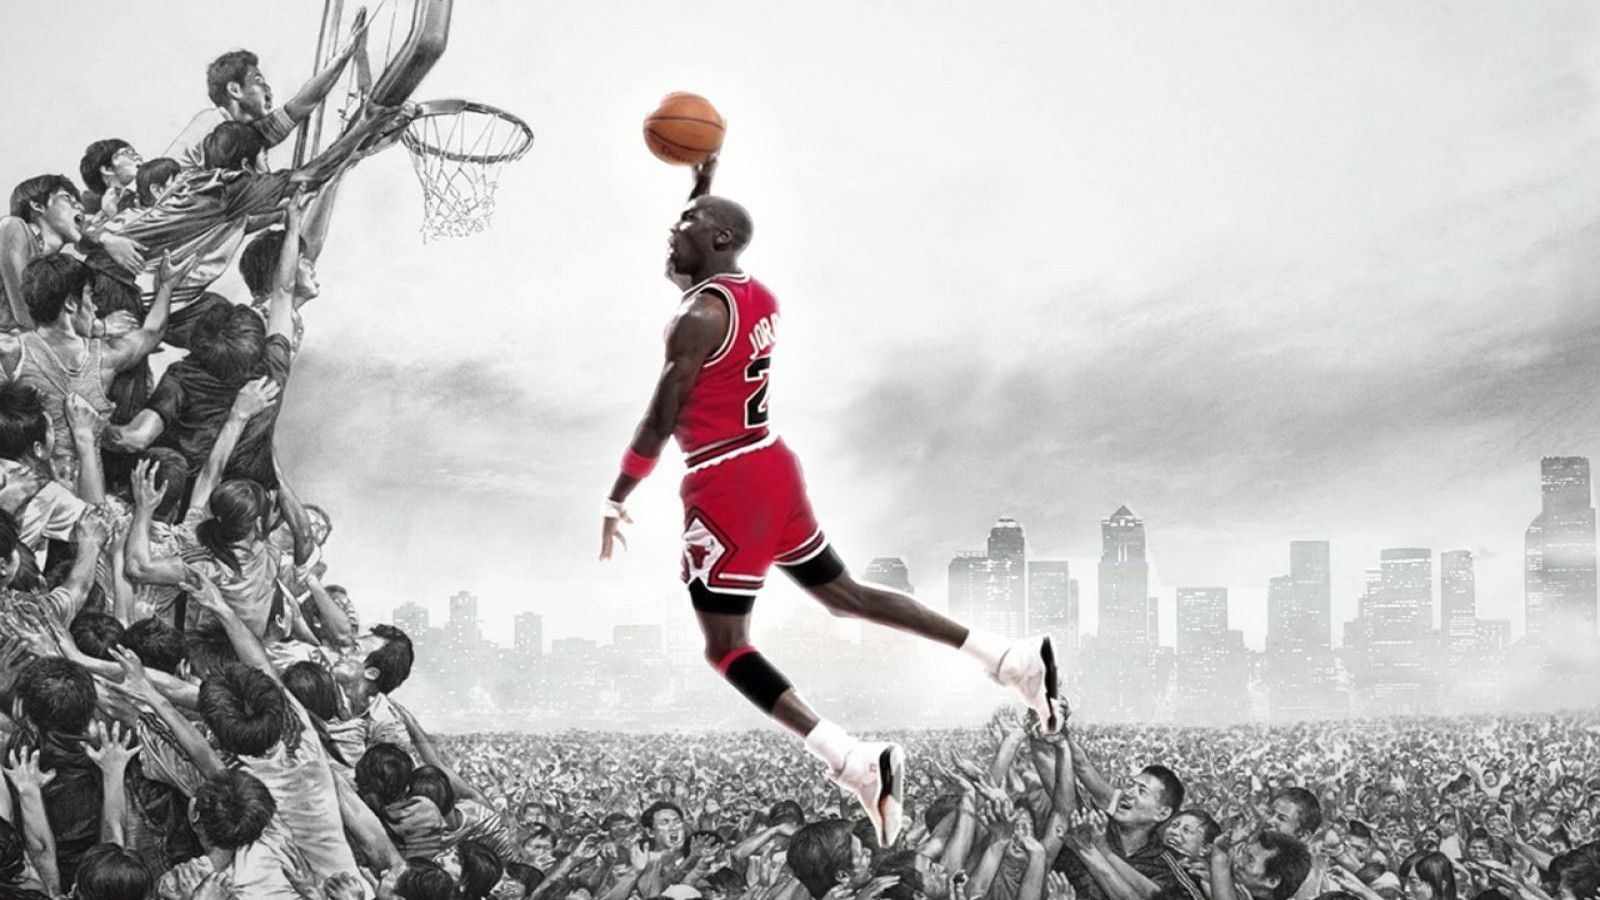 Wallpaper Of Michael Jordan